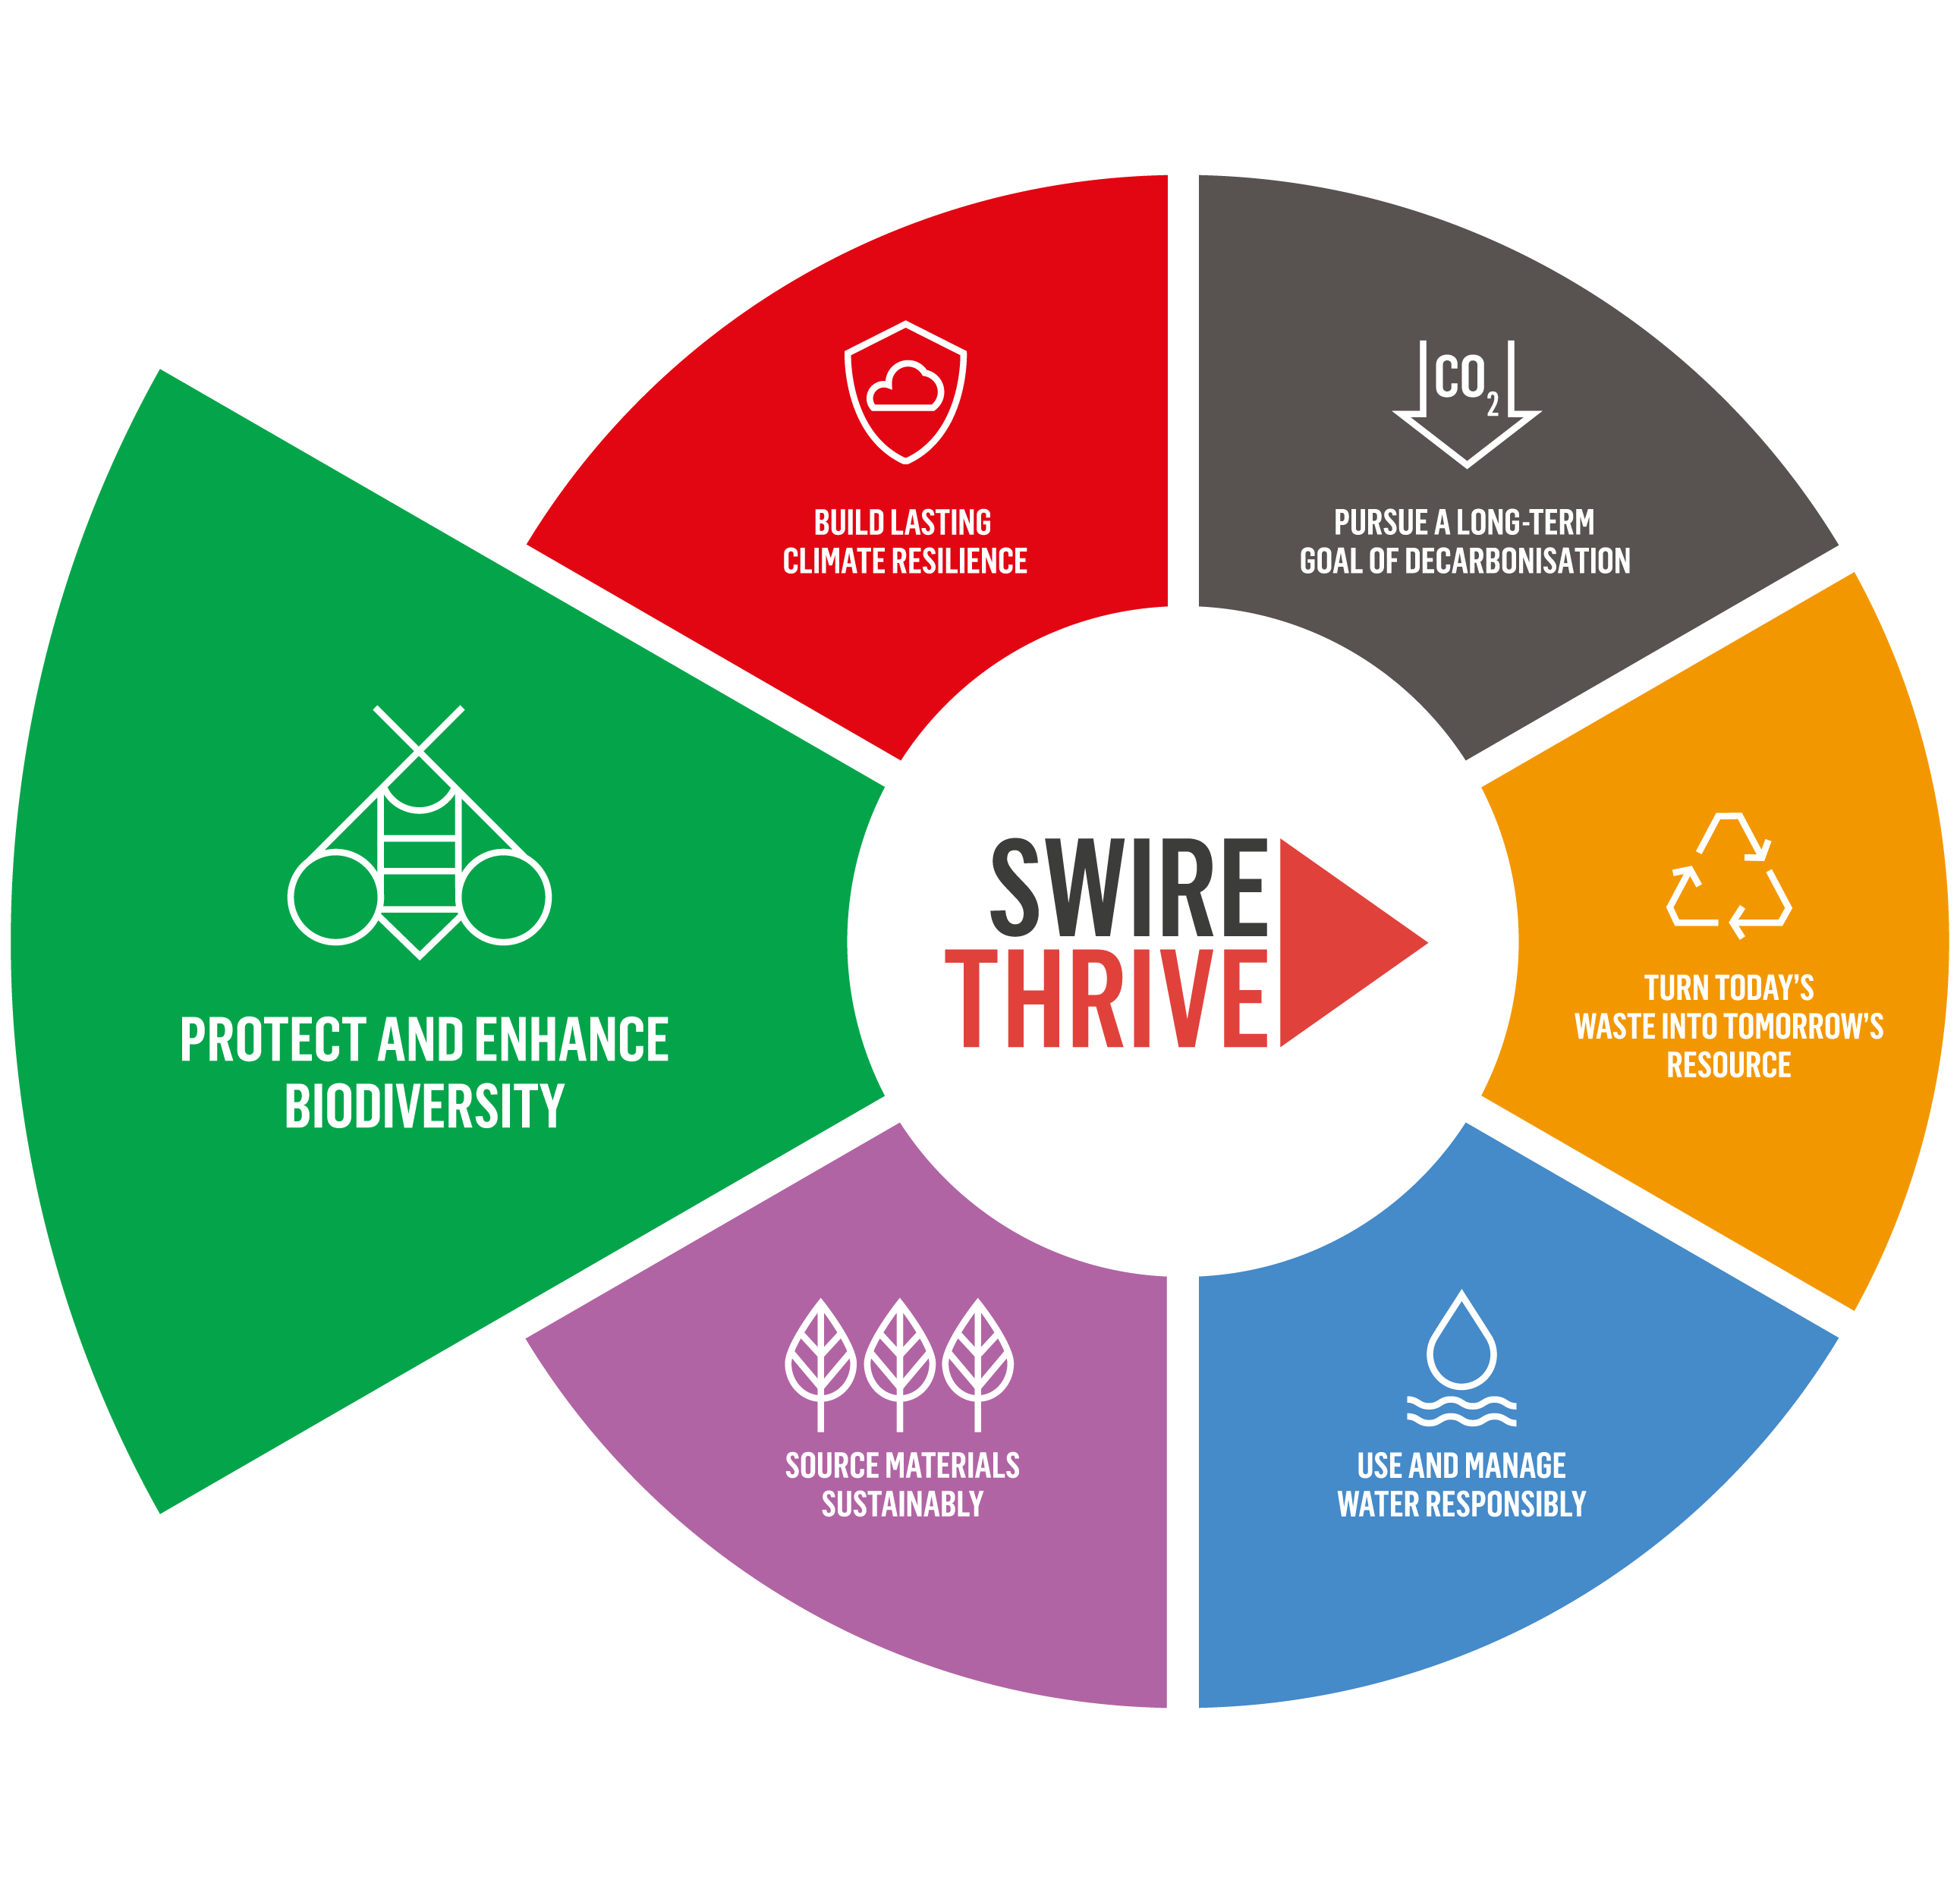 SWIRE THRIVE - Protect and enhance biodiversity